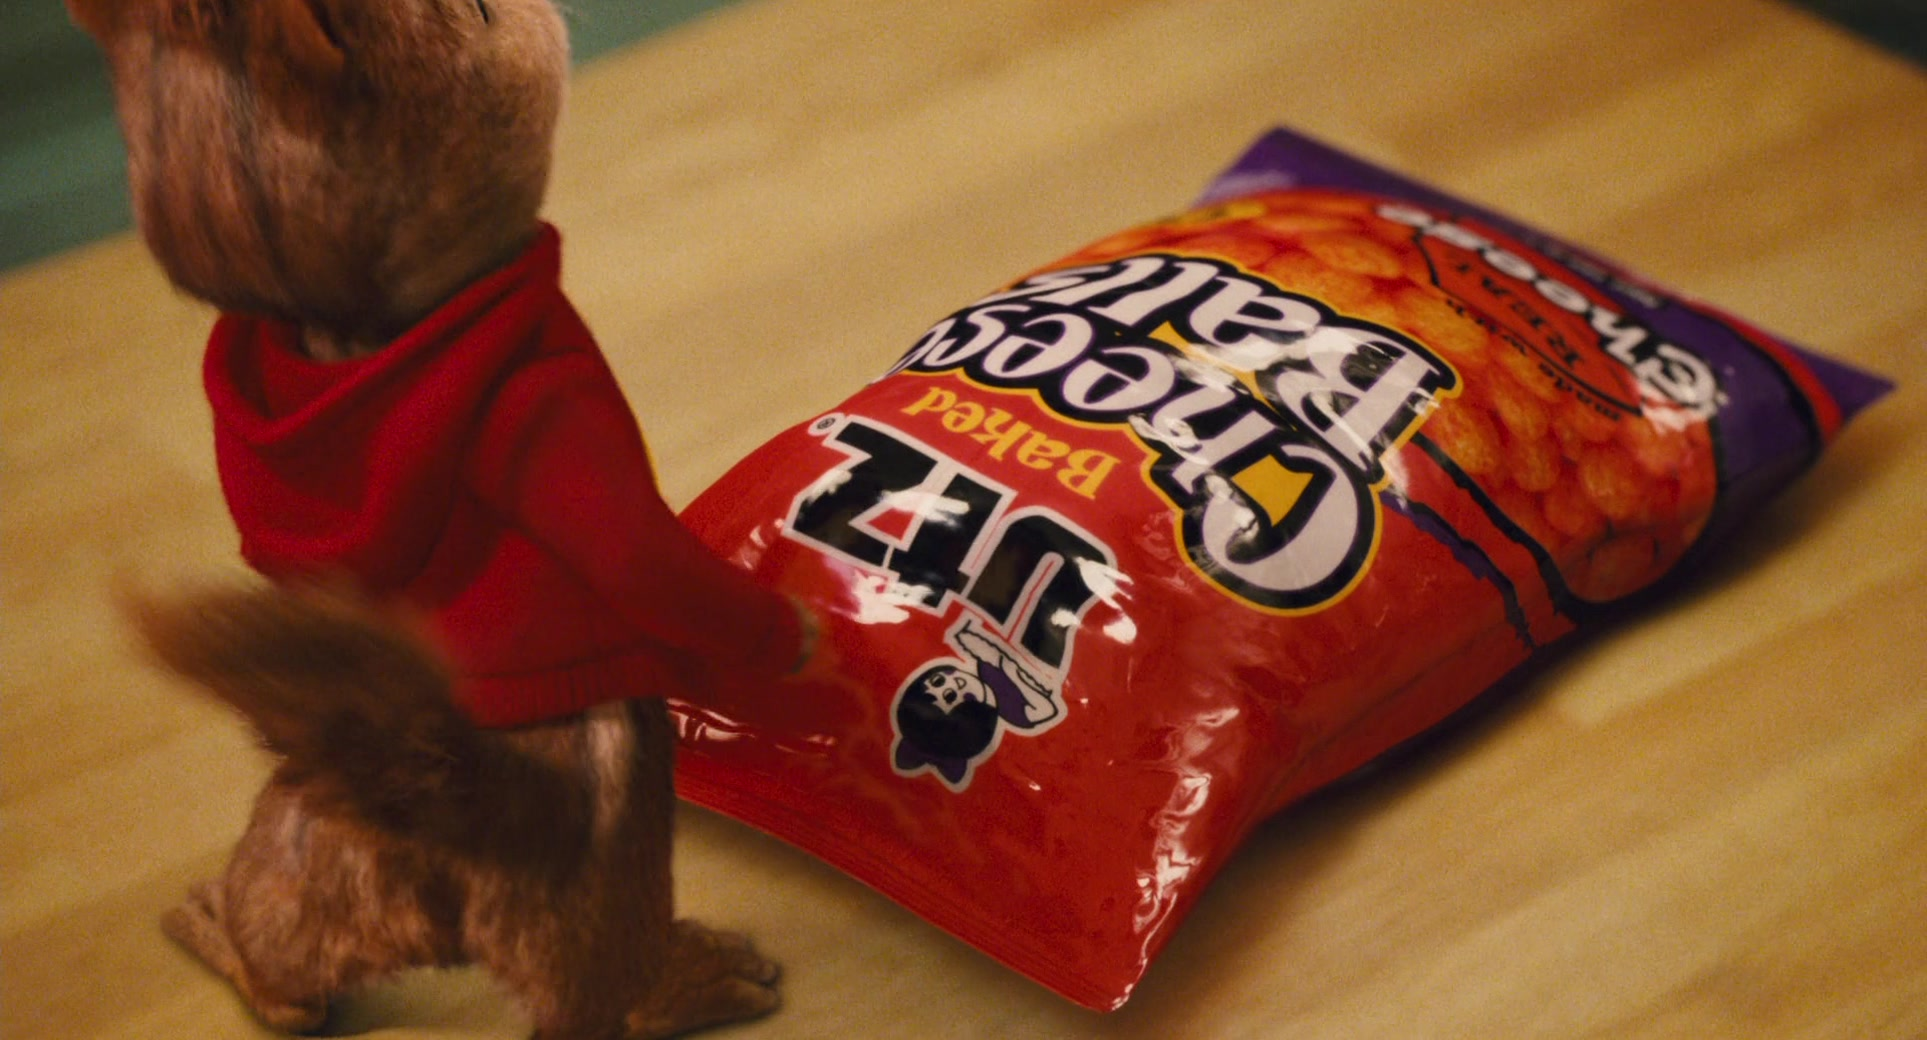 Utz Cheese Balls In Alvin And The Chipmunks The